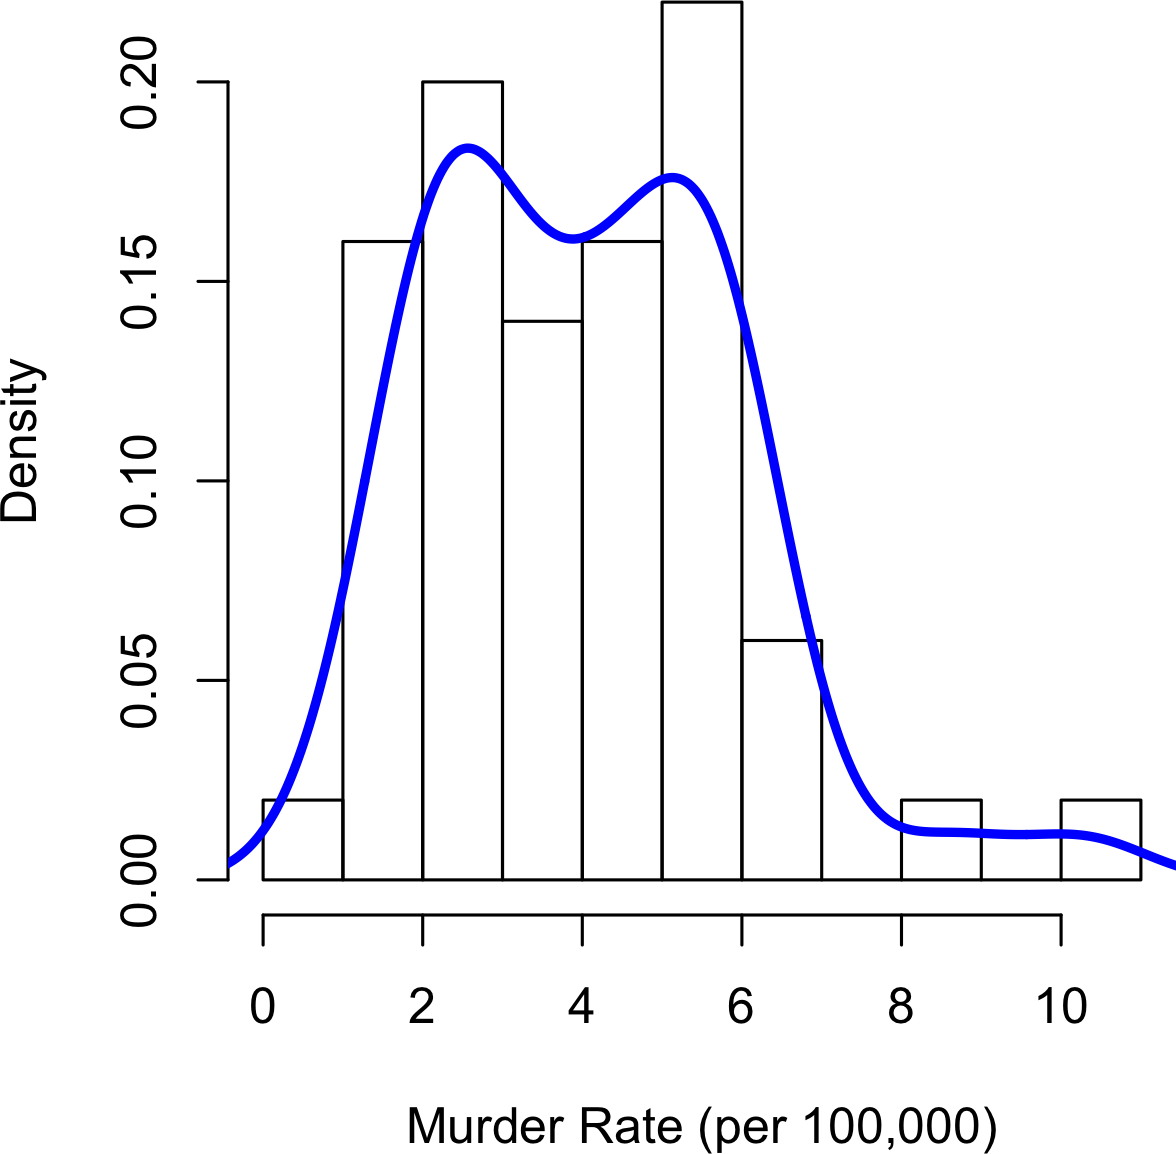 Density of state murder rates